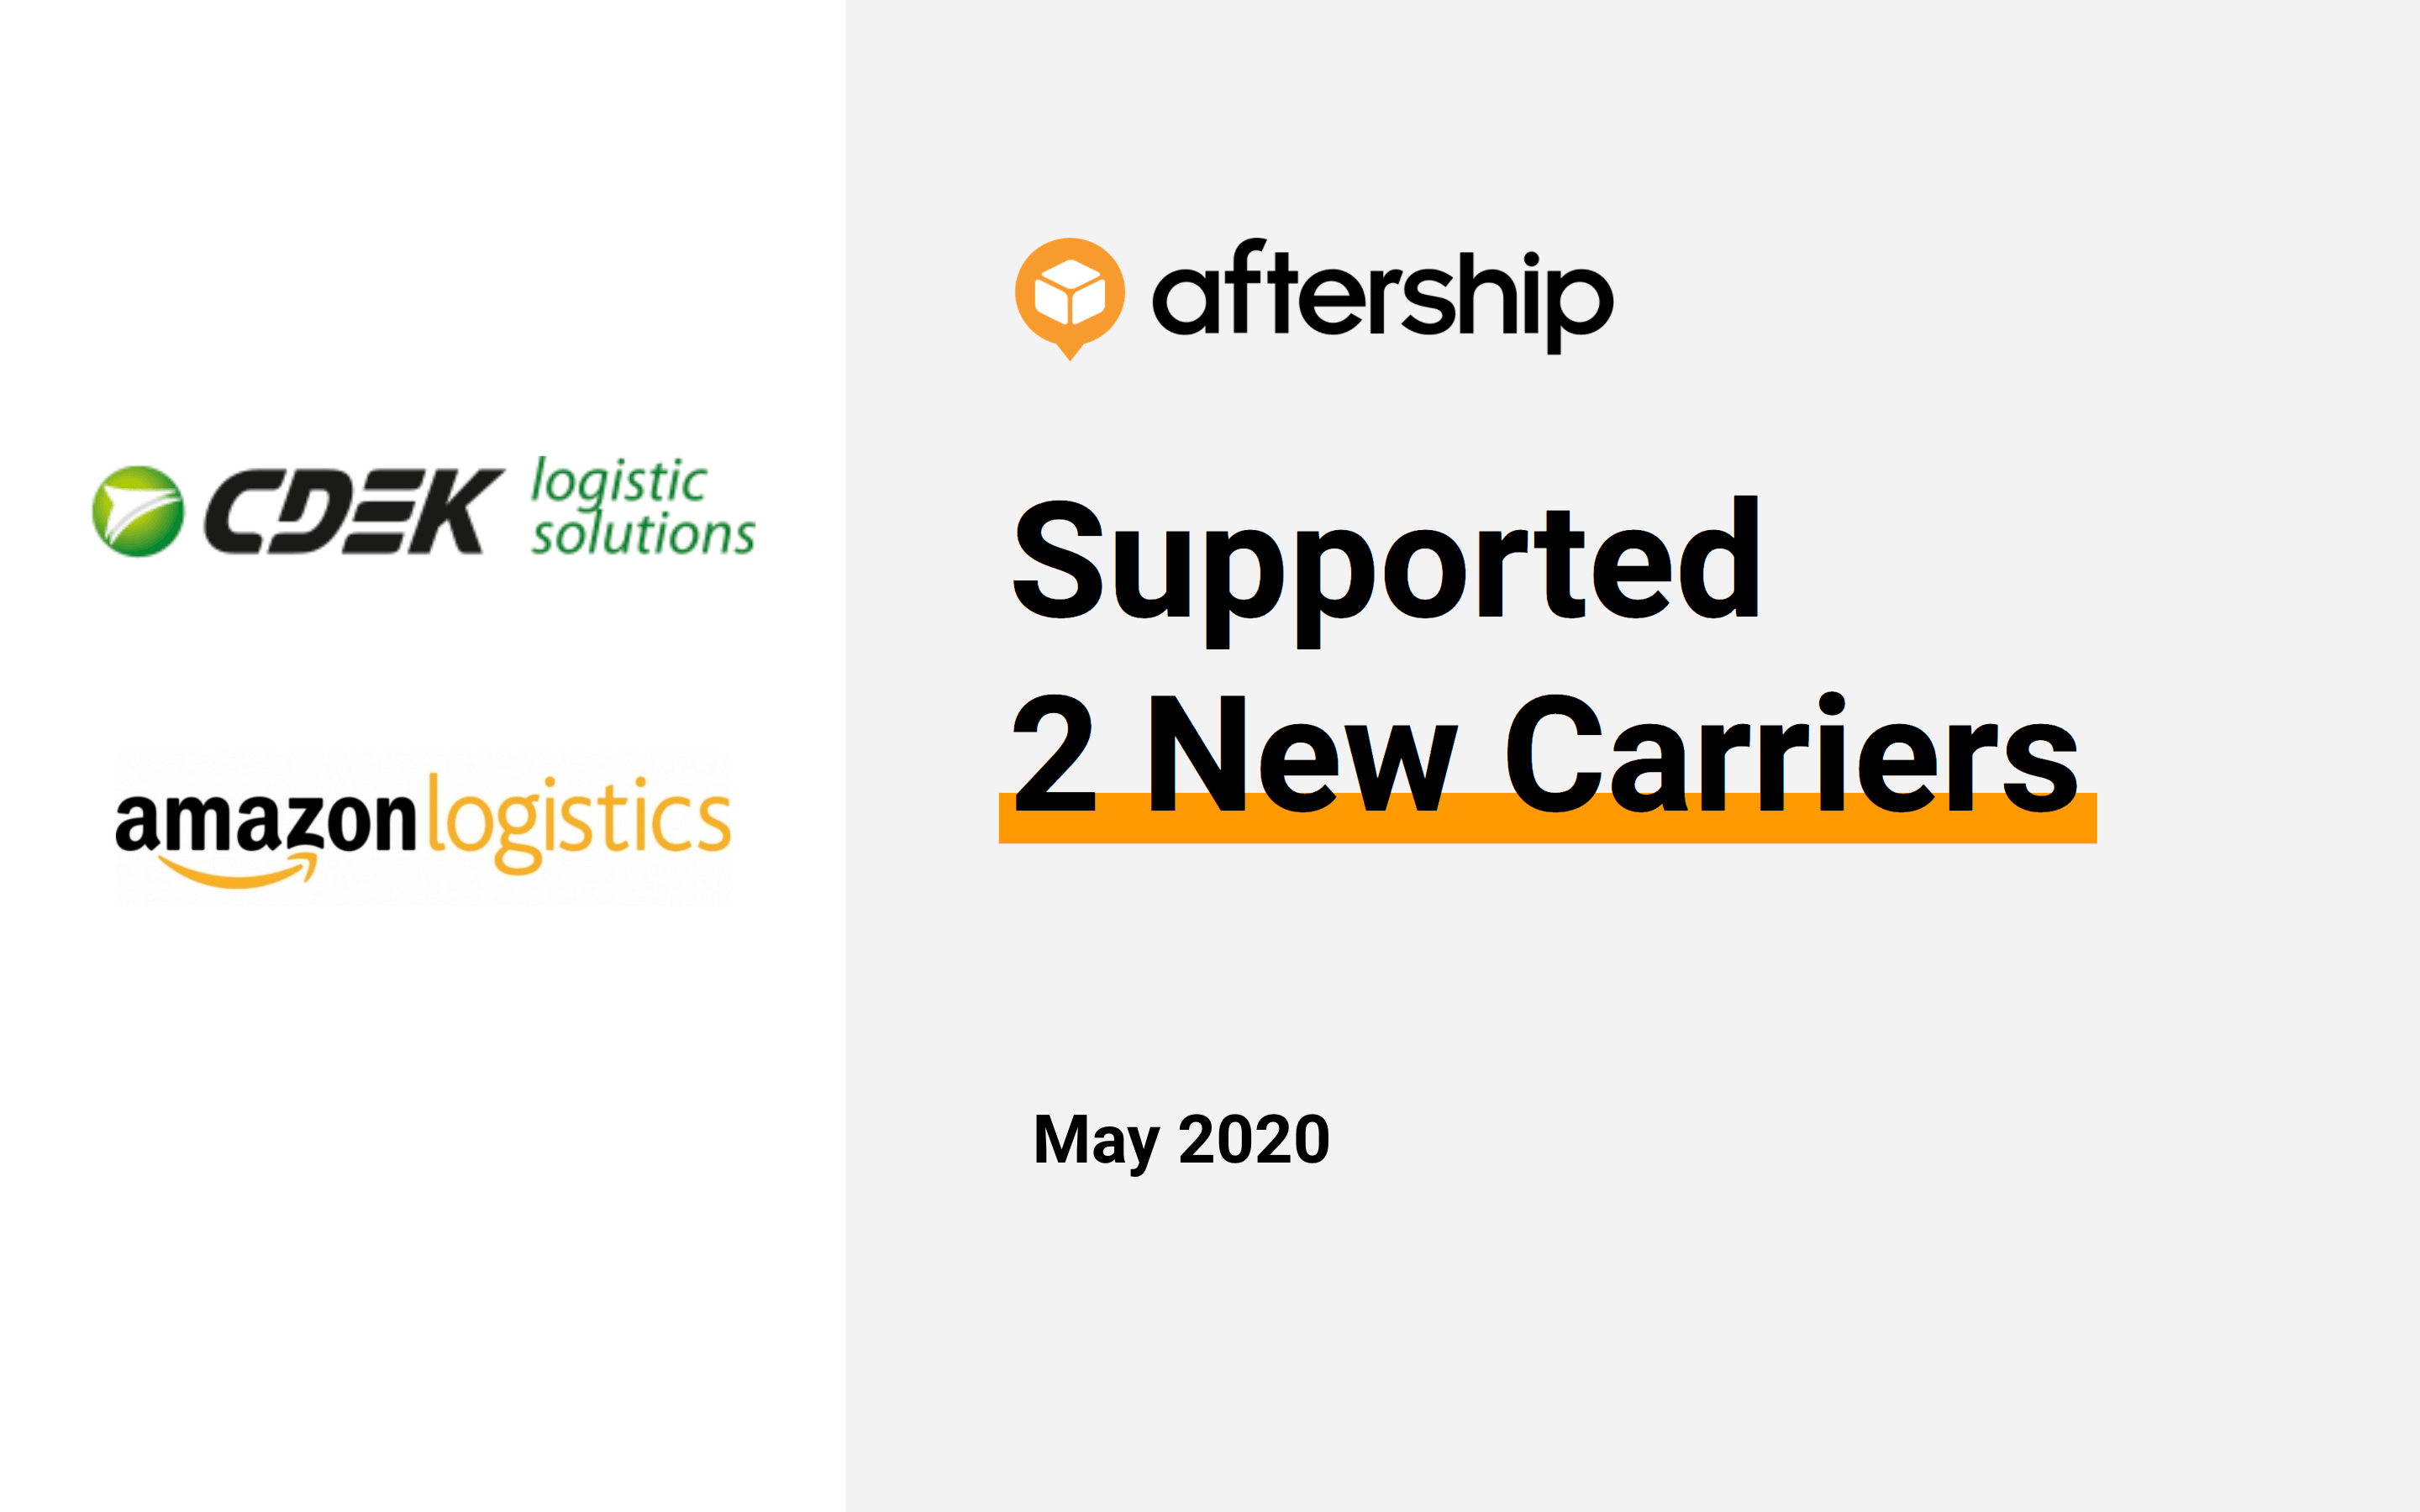 AfterShip added 2 new carriers this week (27 Apr 2020 to 30 Apr 2020)